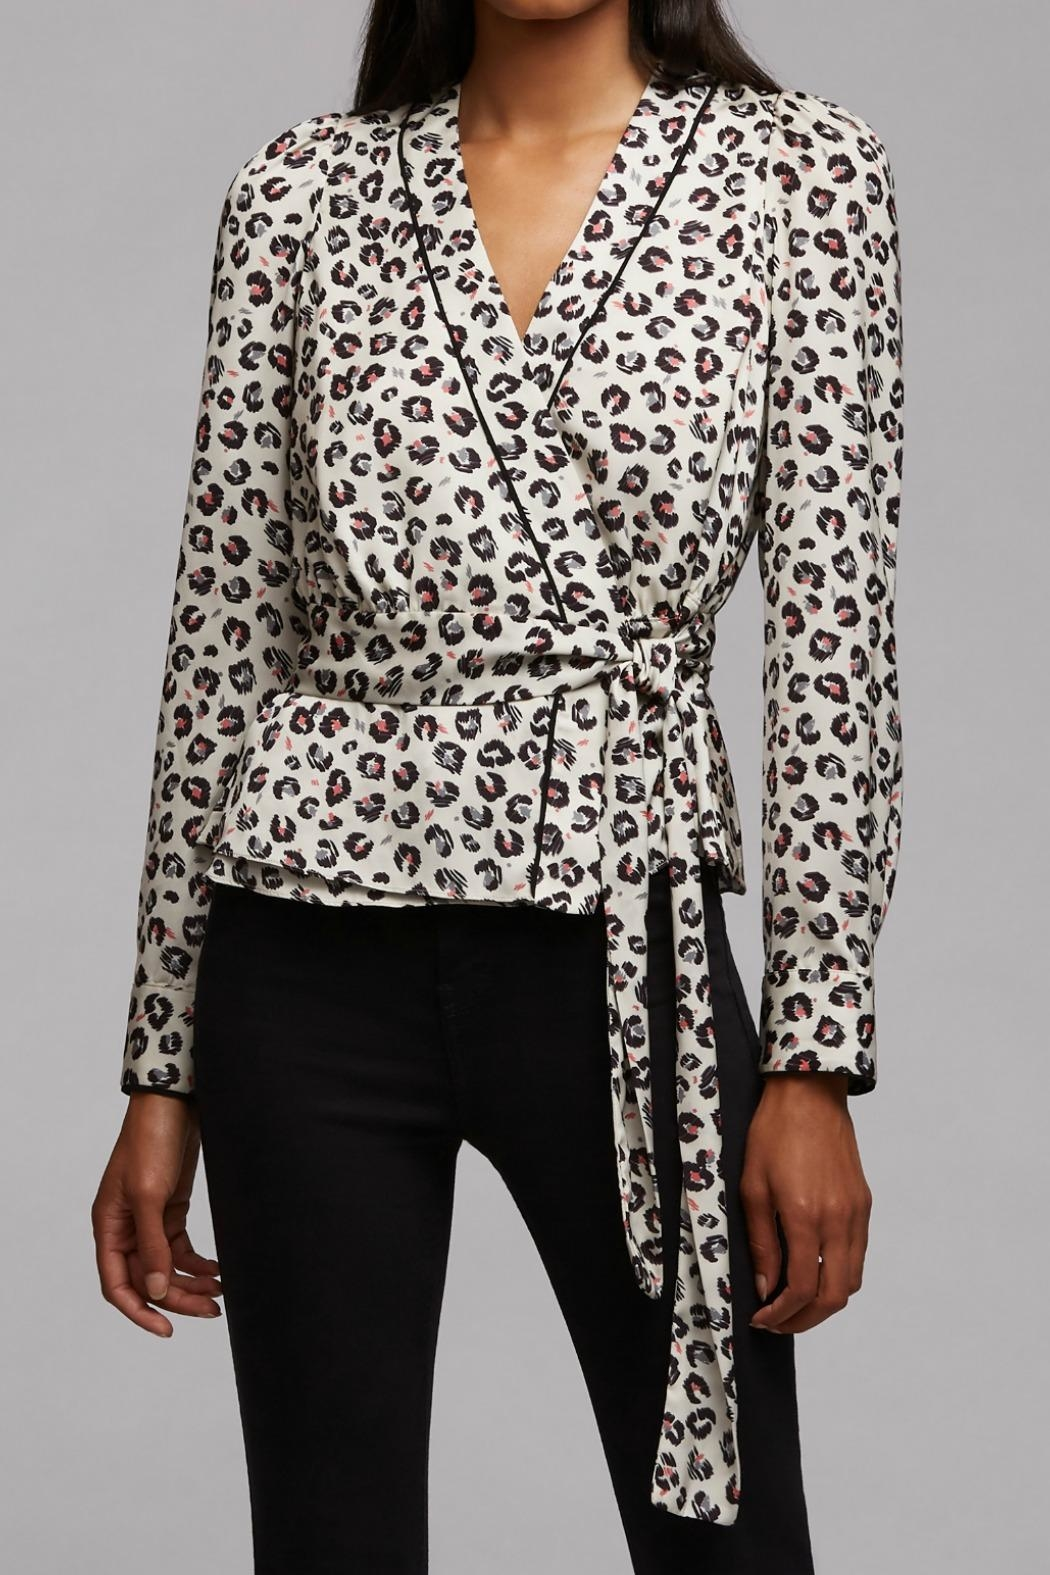 Bailey 44 Marguerite Leopard Top - Front Cropped Image